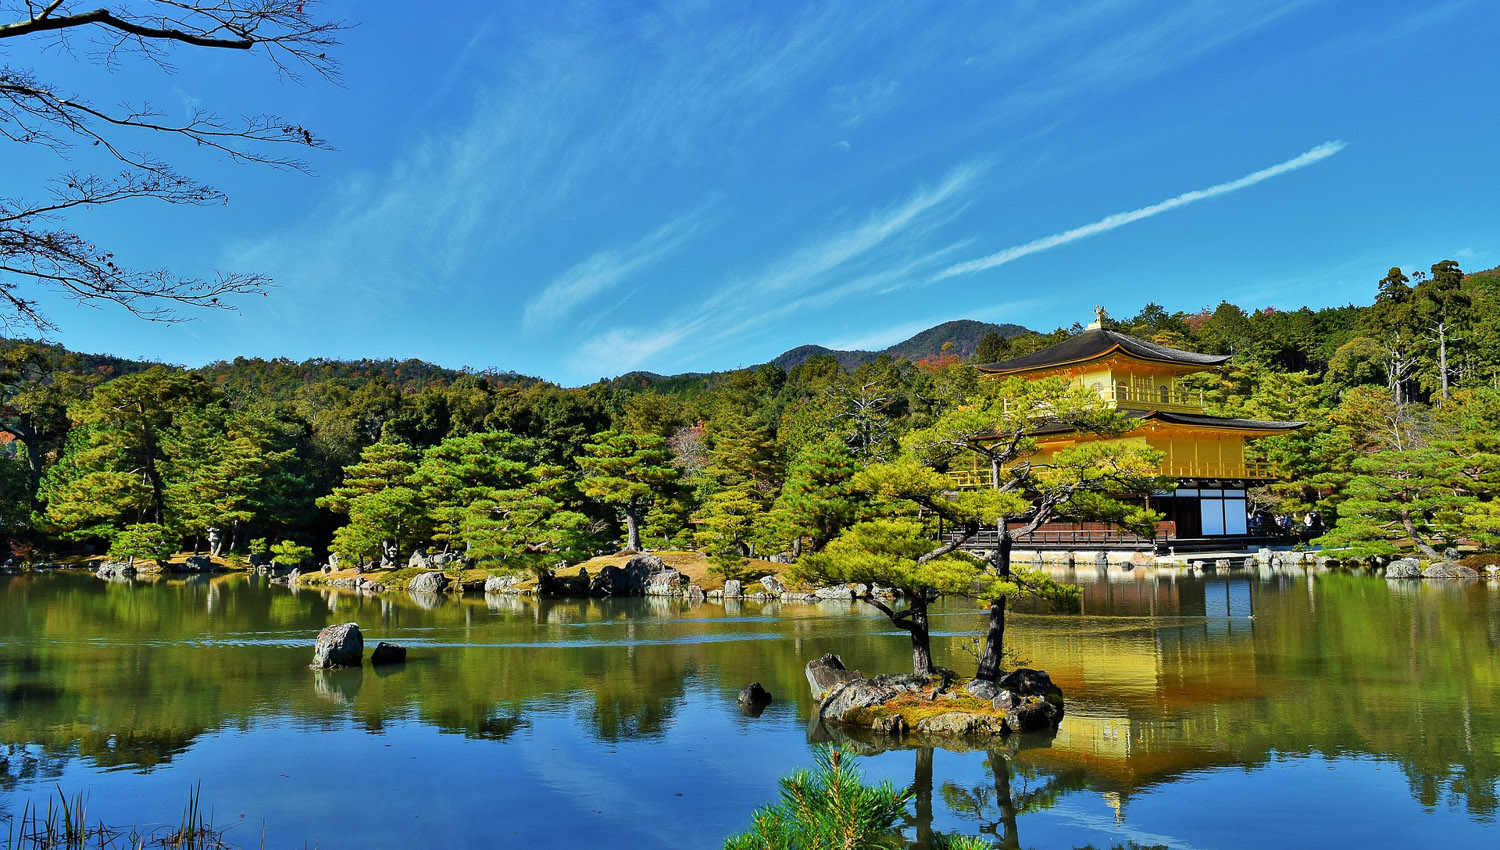 T he gardens of the Golden Pavilion in Kyoto. Image:   Jesse Ramnanansingh